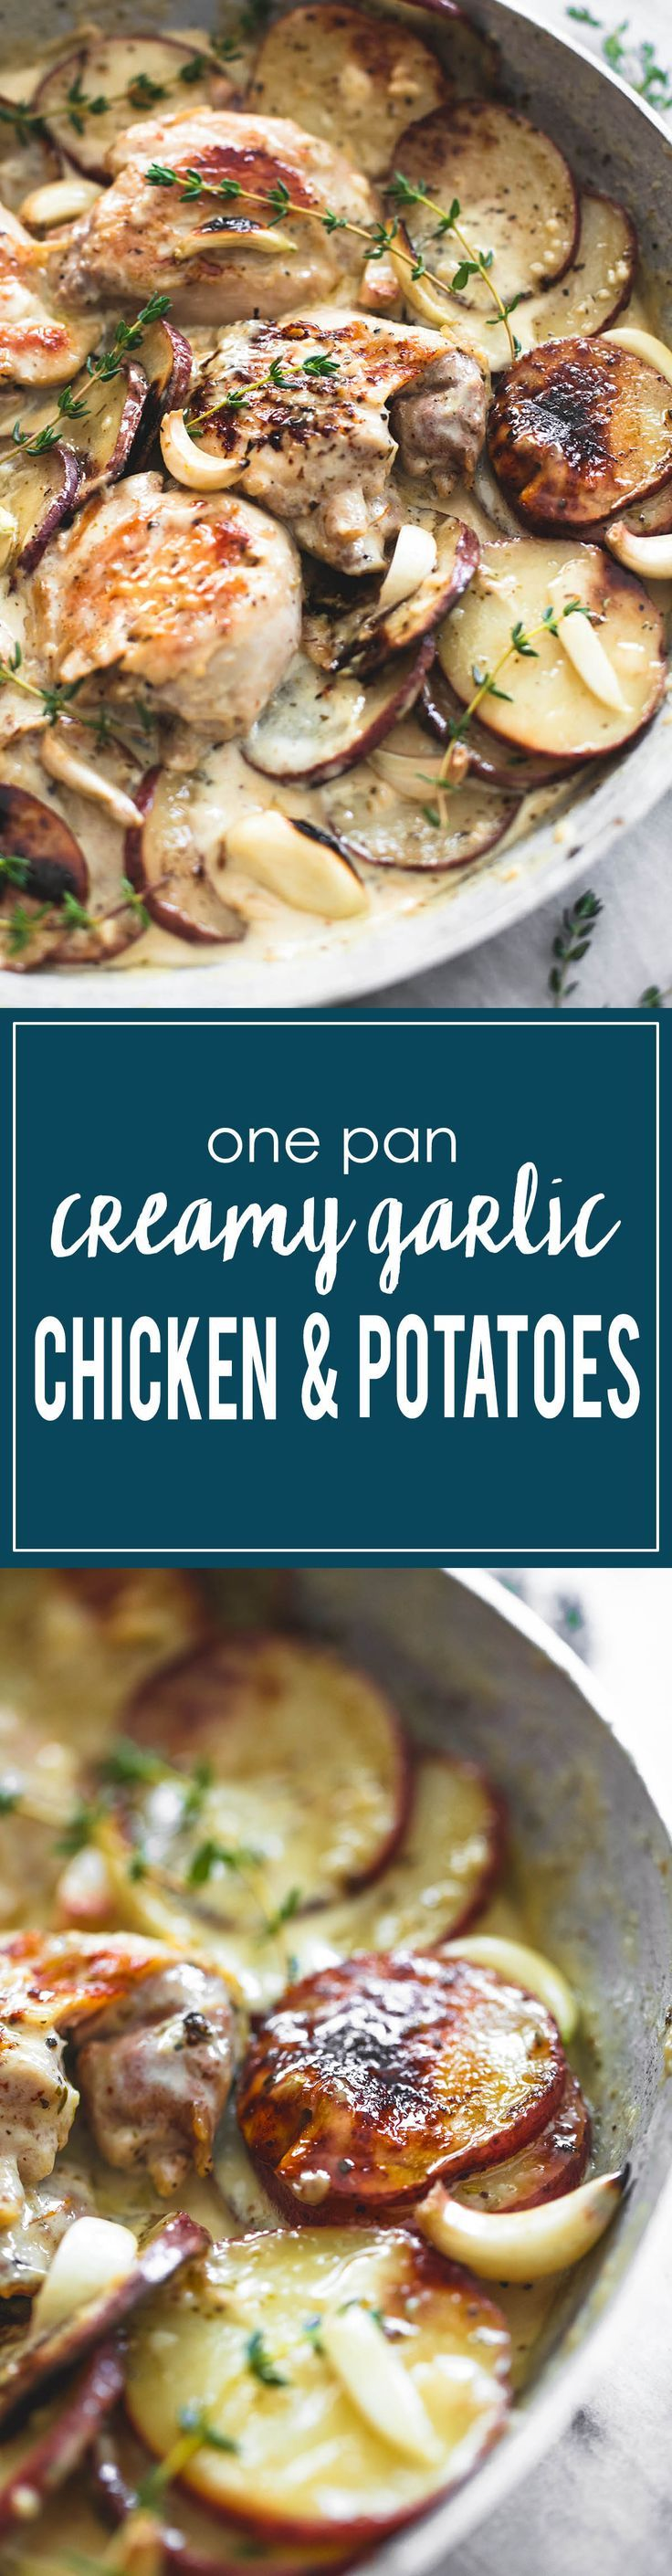 30 minutes and a skillet is all you need to whip up this incredibly flavorful and hearty one pan creamy garlic herb chicken & potatoes!